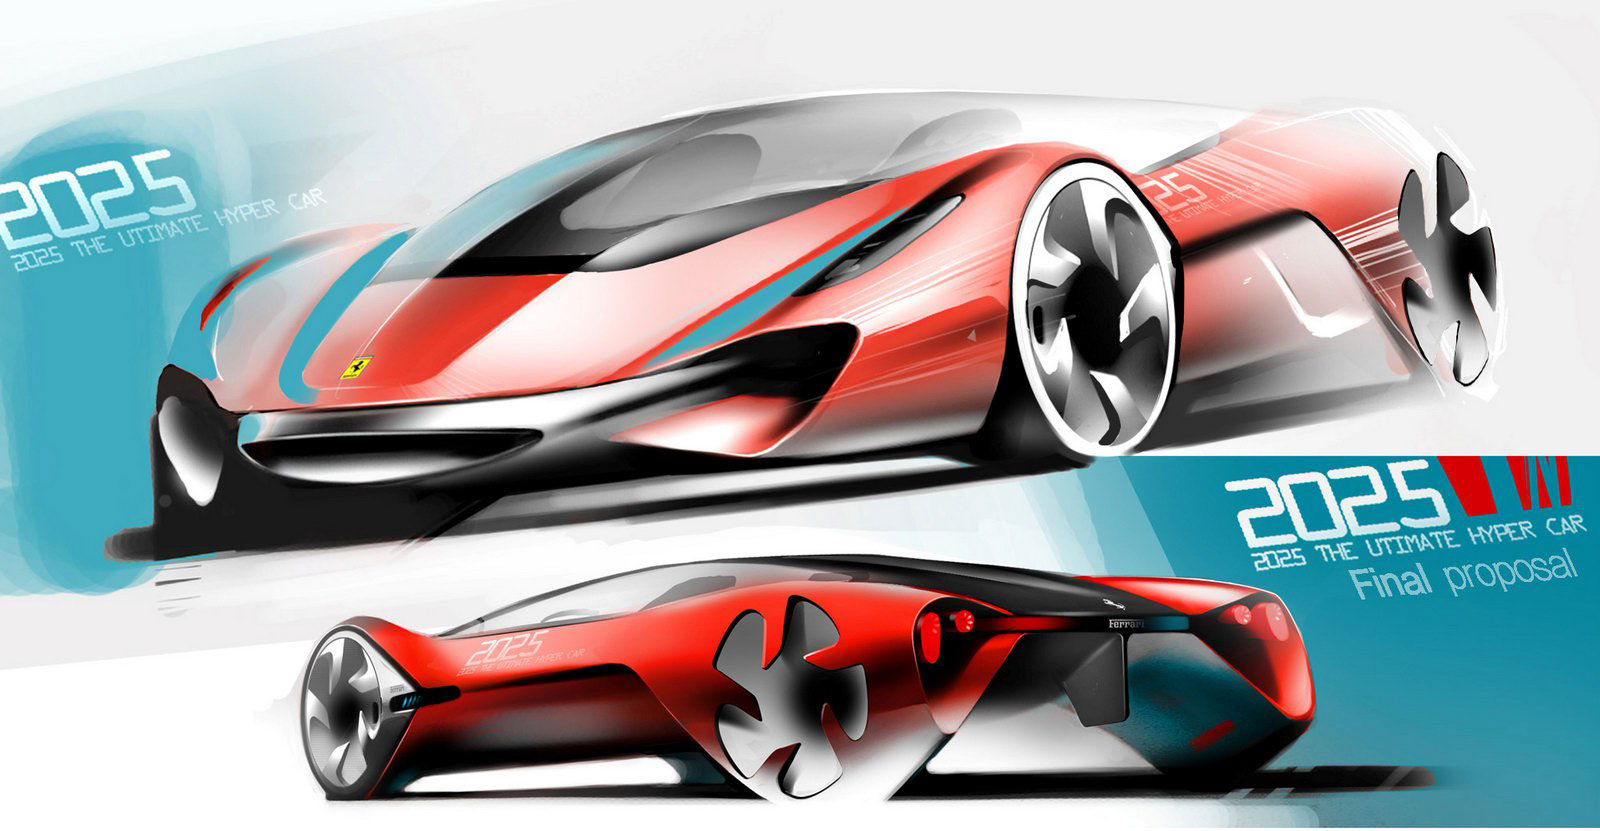 Awesome Designs For The Ferrari World Design Contest Graphic